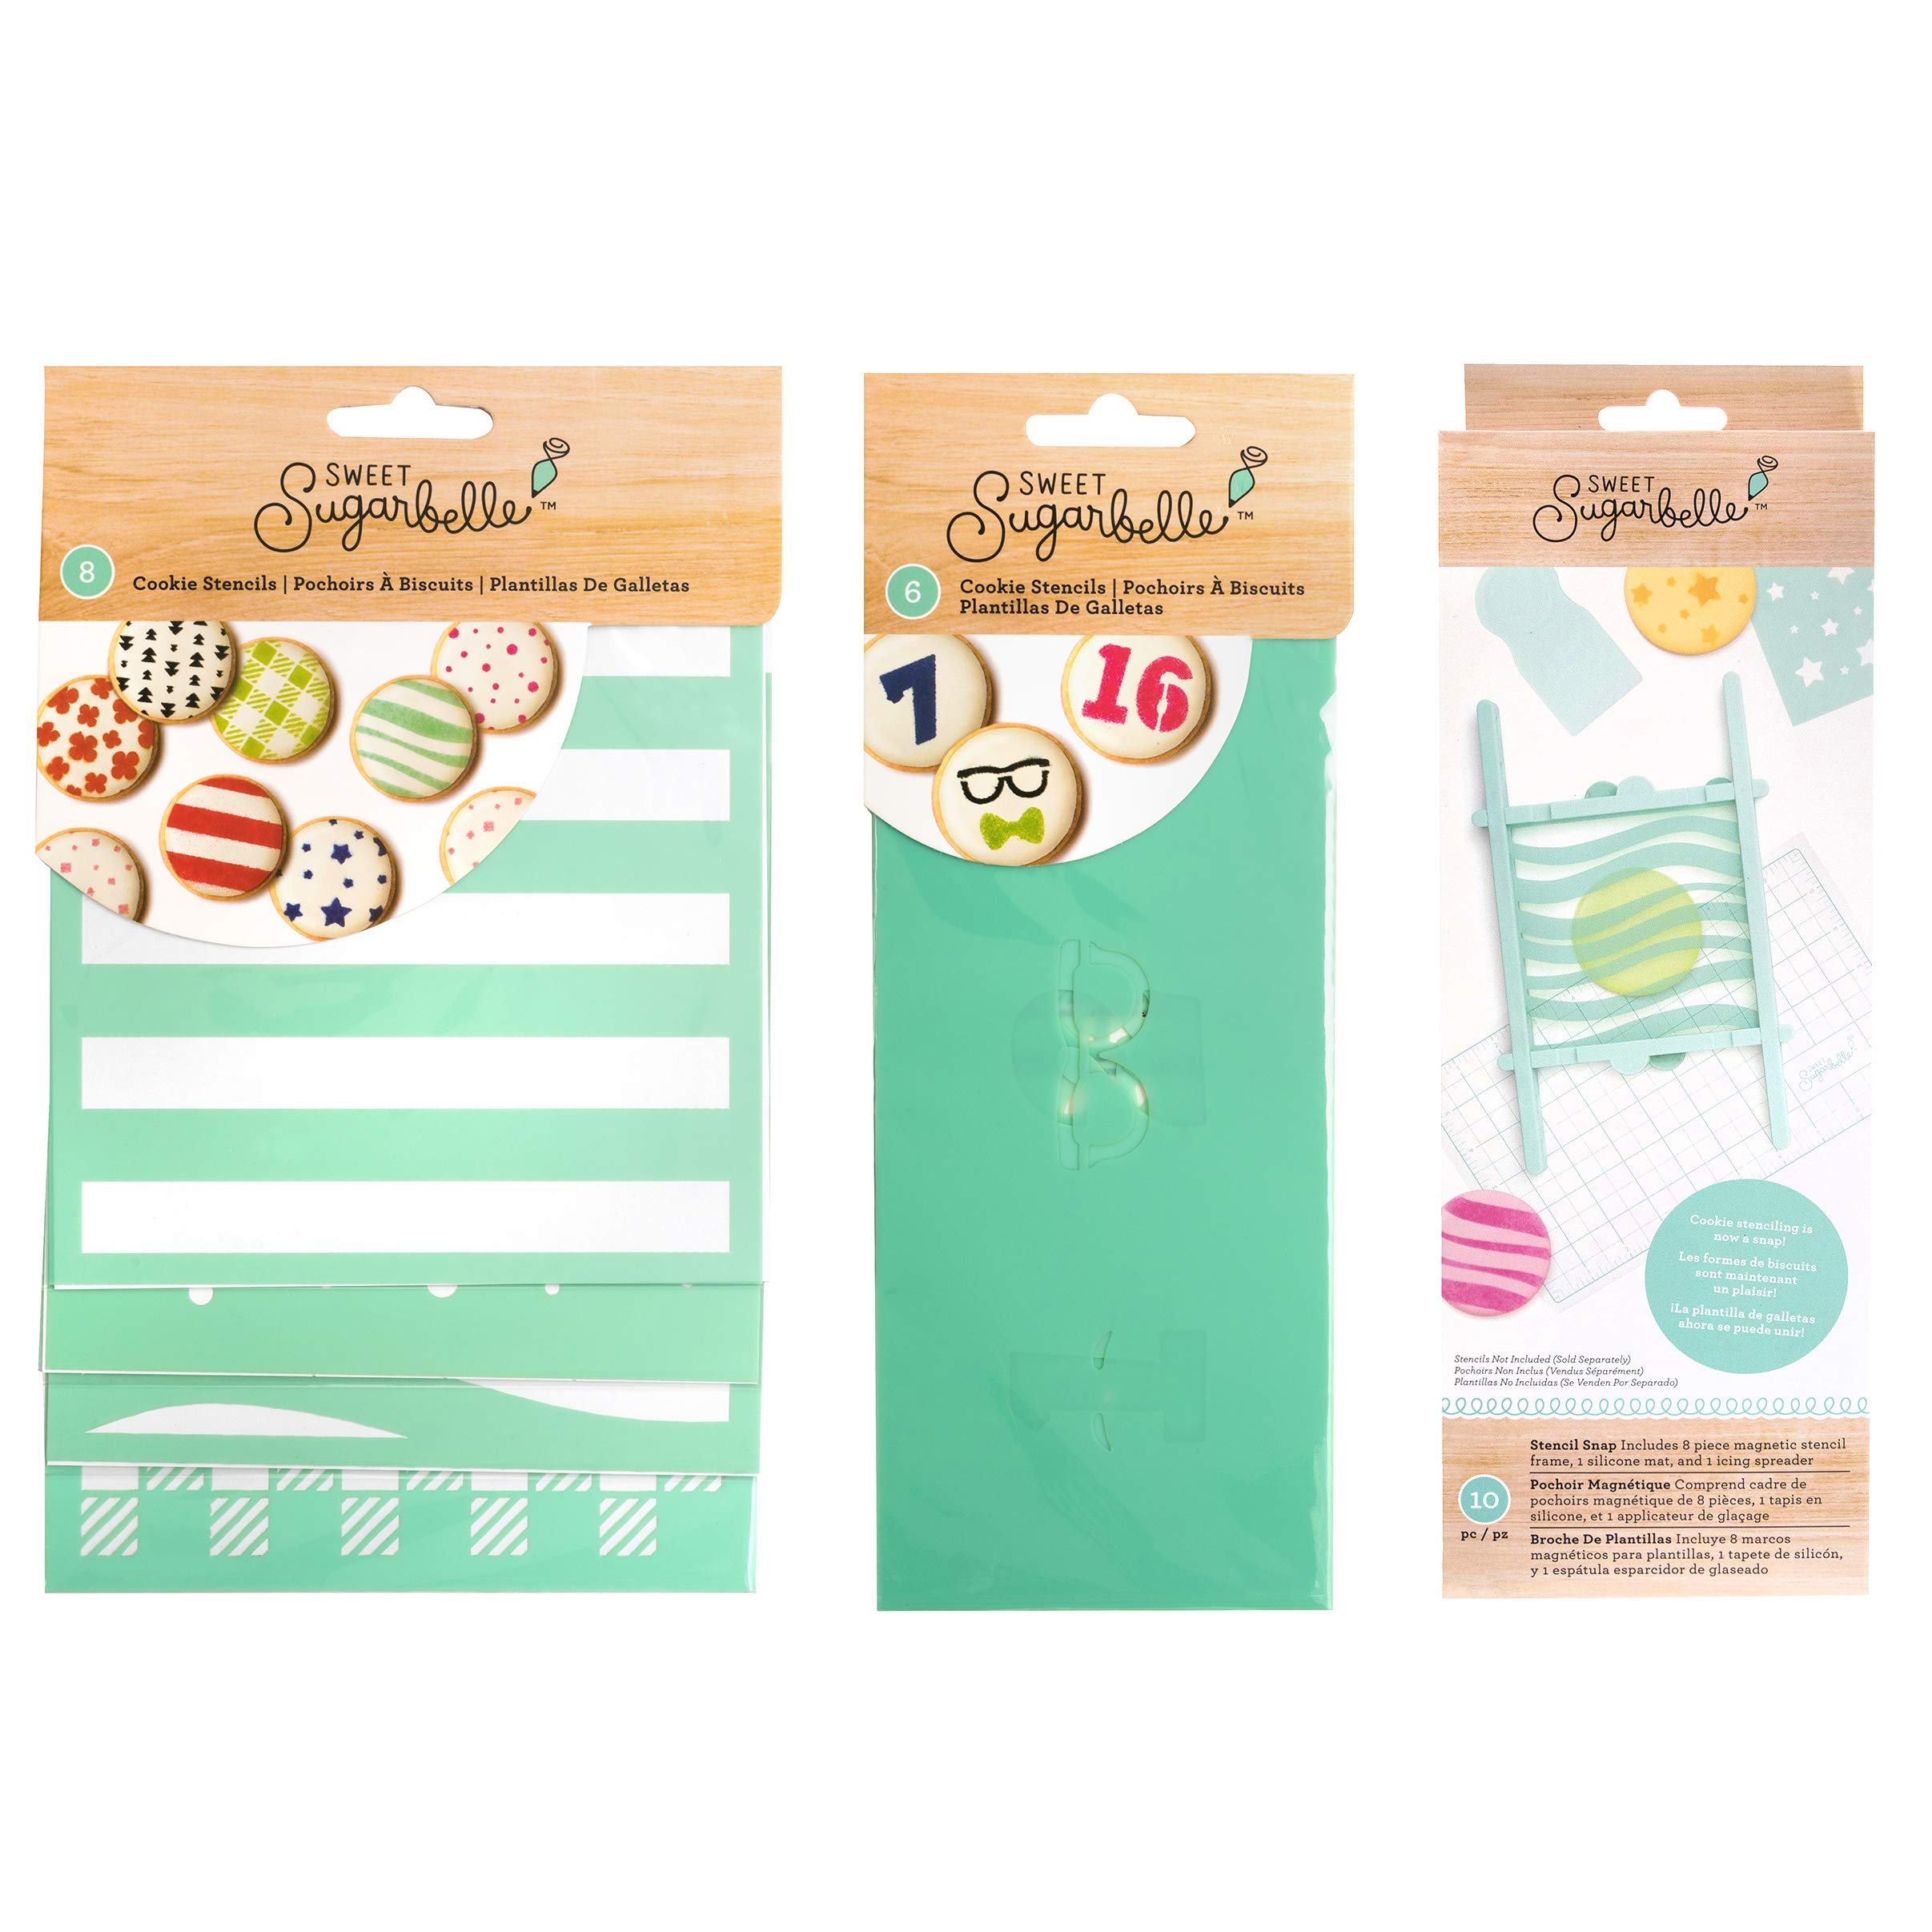 Sweet Sugarbelle Cookie Stencils and Stencil Snap Holder Frame - Patterns, Expressions, and Numbers Design Templates for Decorating and Baking (14 Sheets) by Sweet Sugarbelle (Image #1)